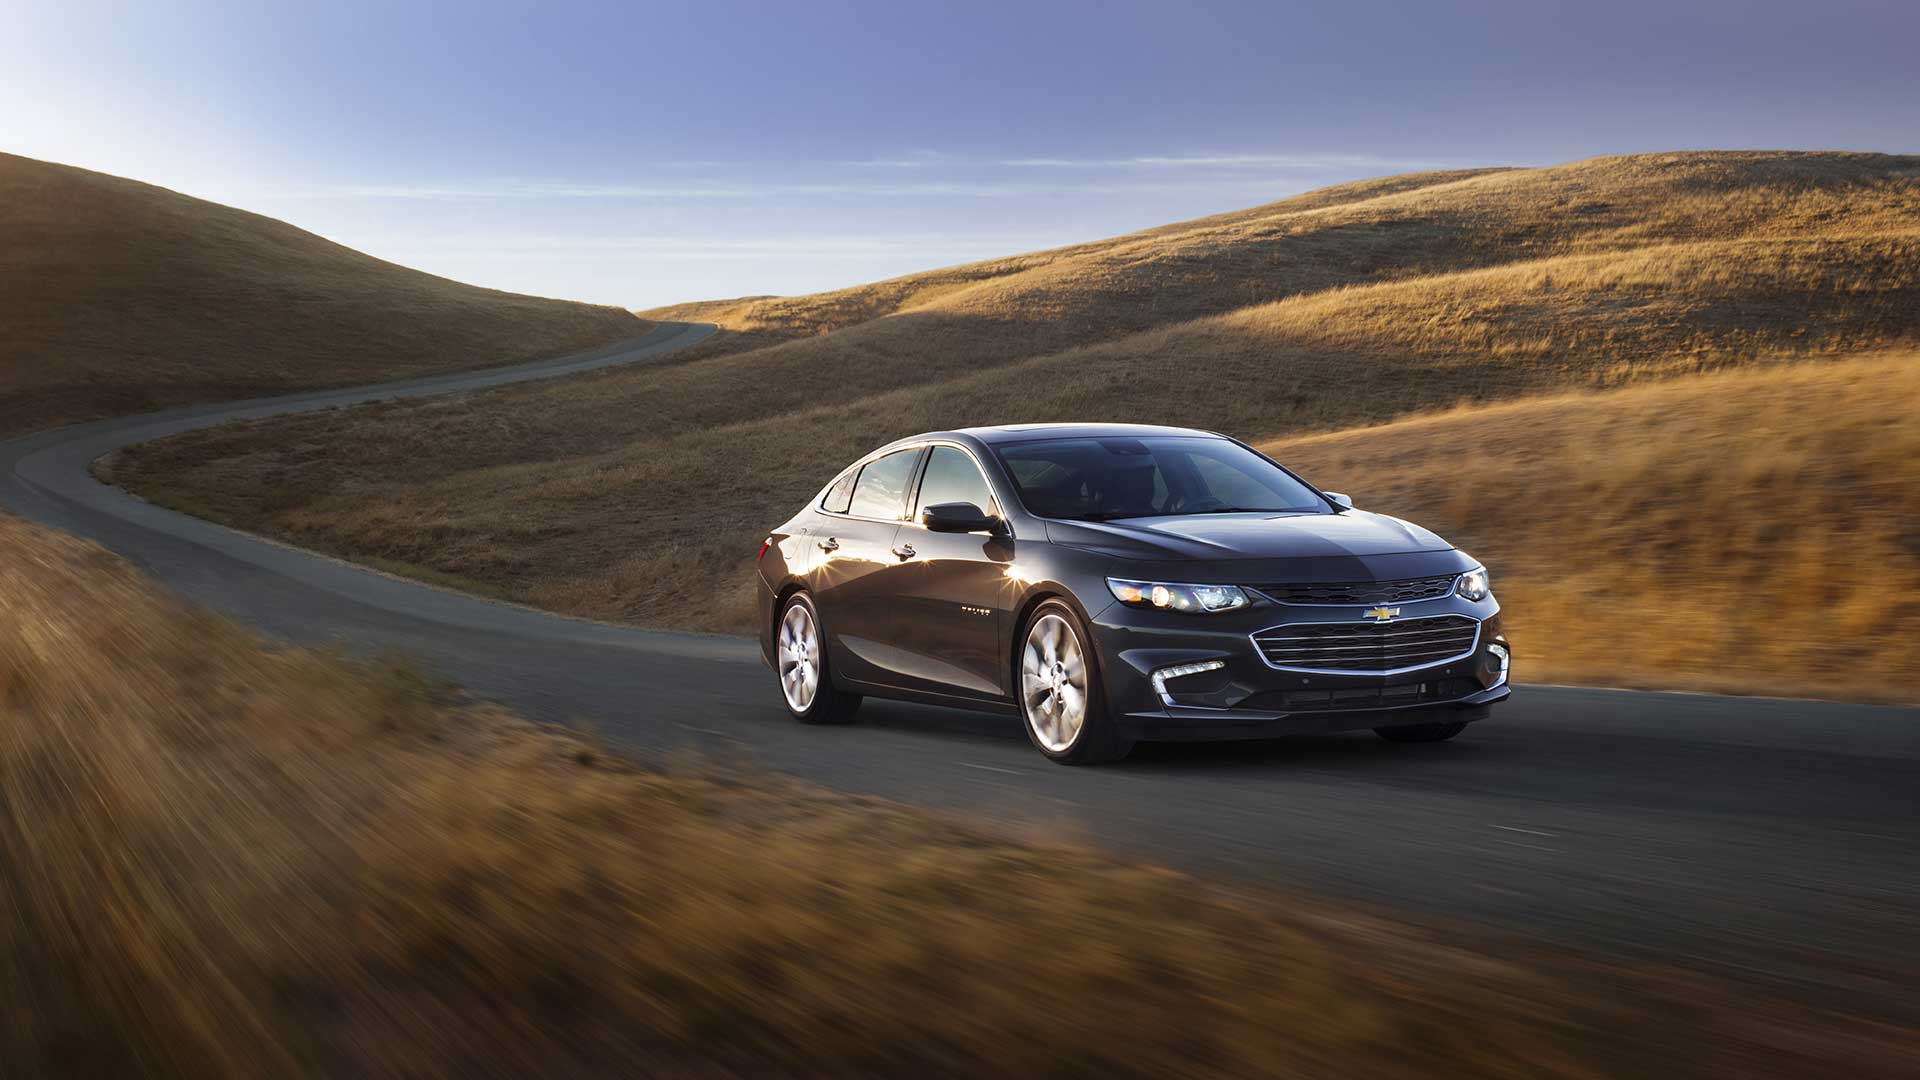 2017 chevrolet malibu superior chevrolet conway ar. Cars Review. Best American Auto & Cars Review